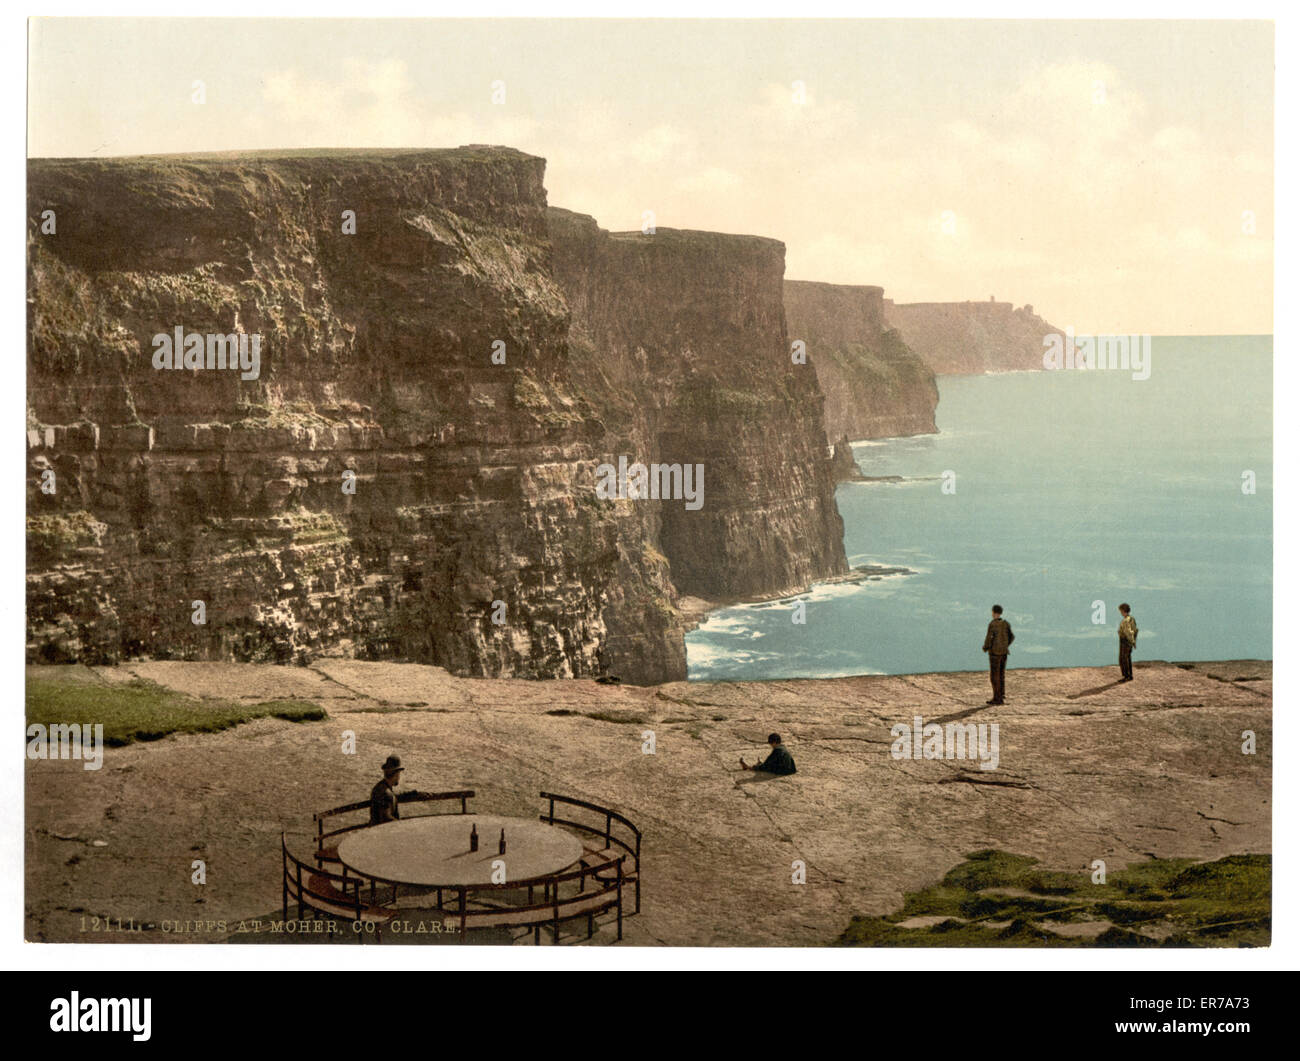 Cliffs at Moher. County Claire. (i.e. Clare), Ireland. Date between ca. 1890 and ca. 1900. - Stock Image